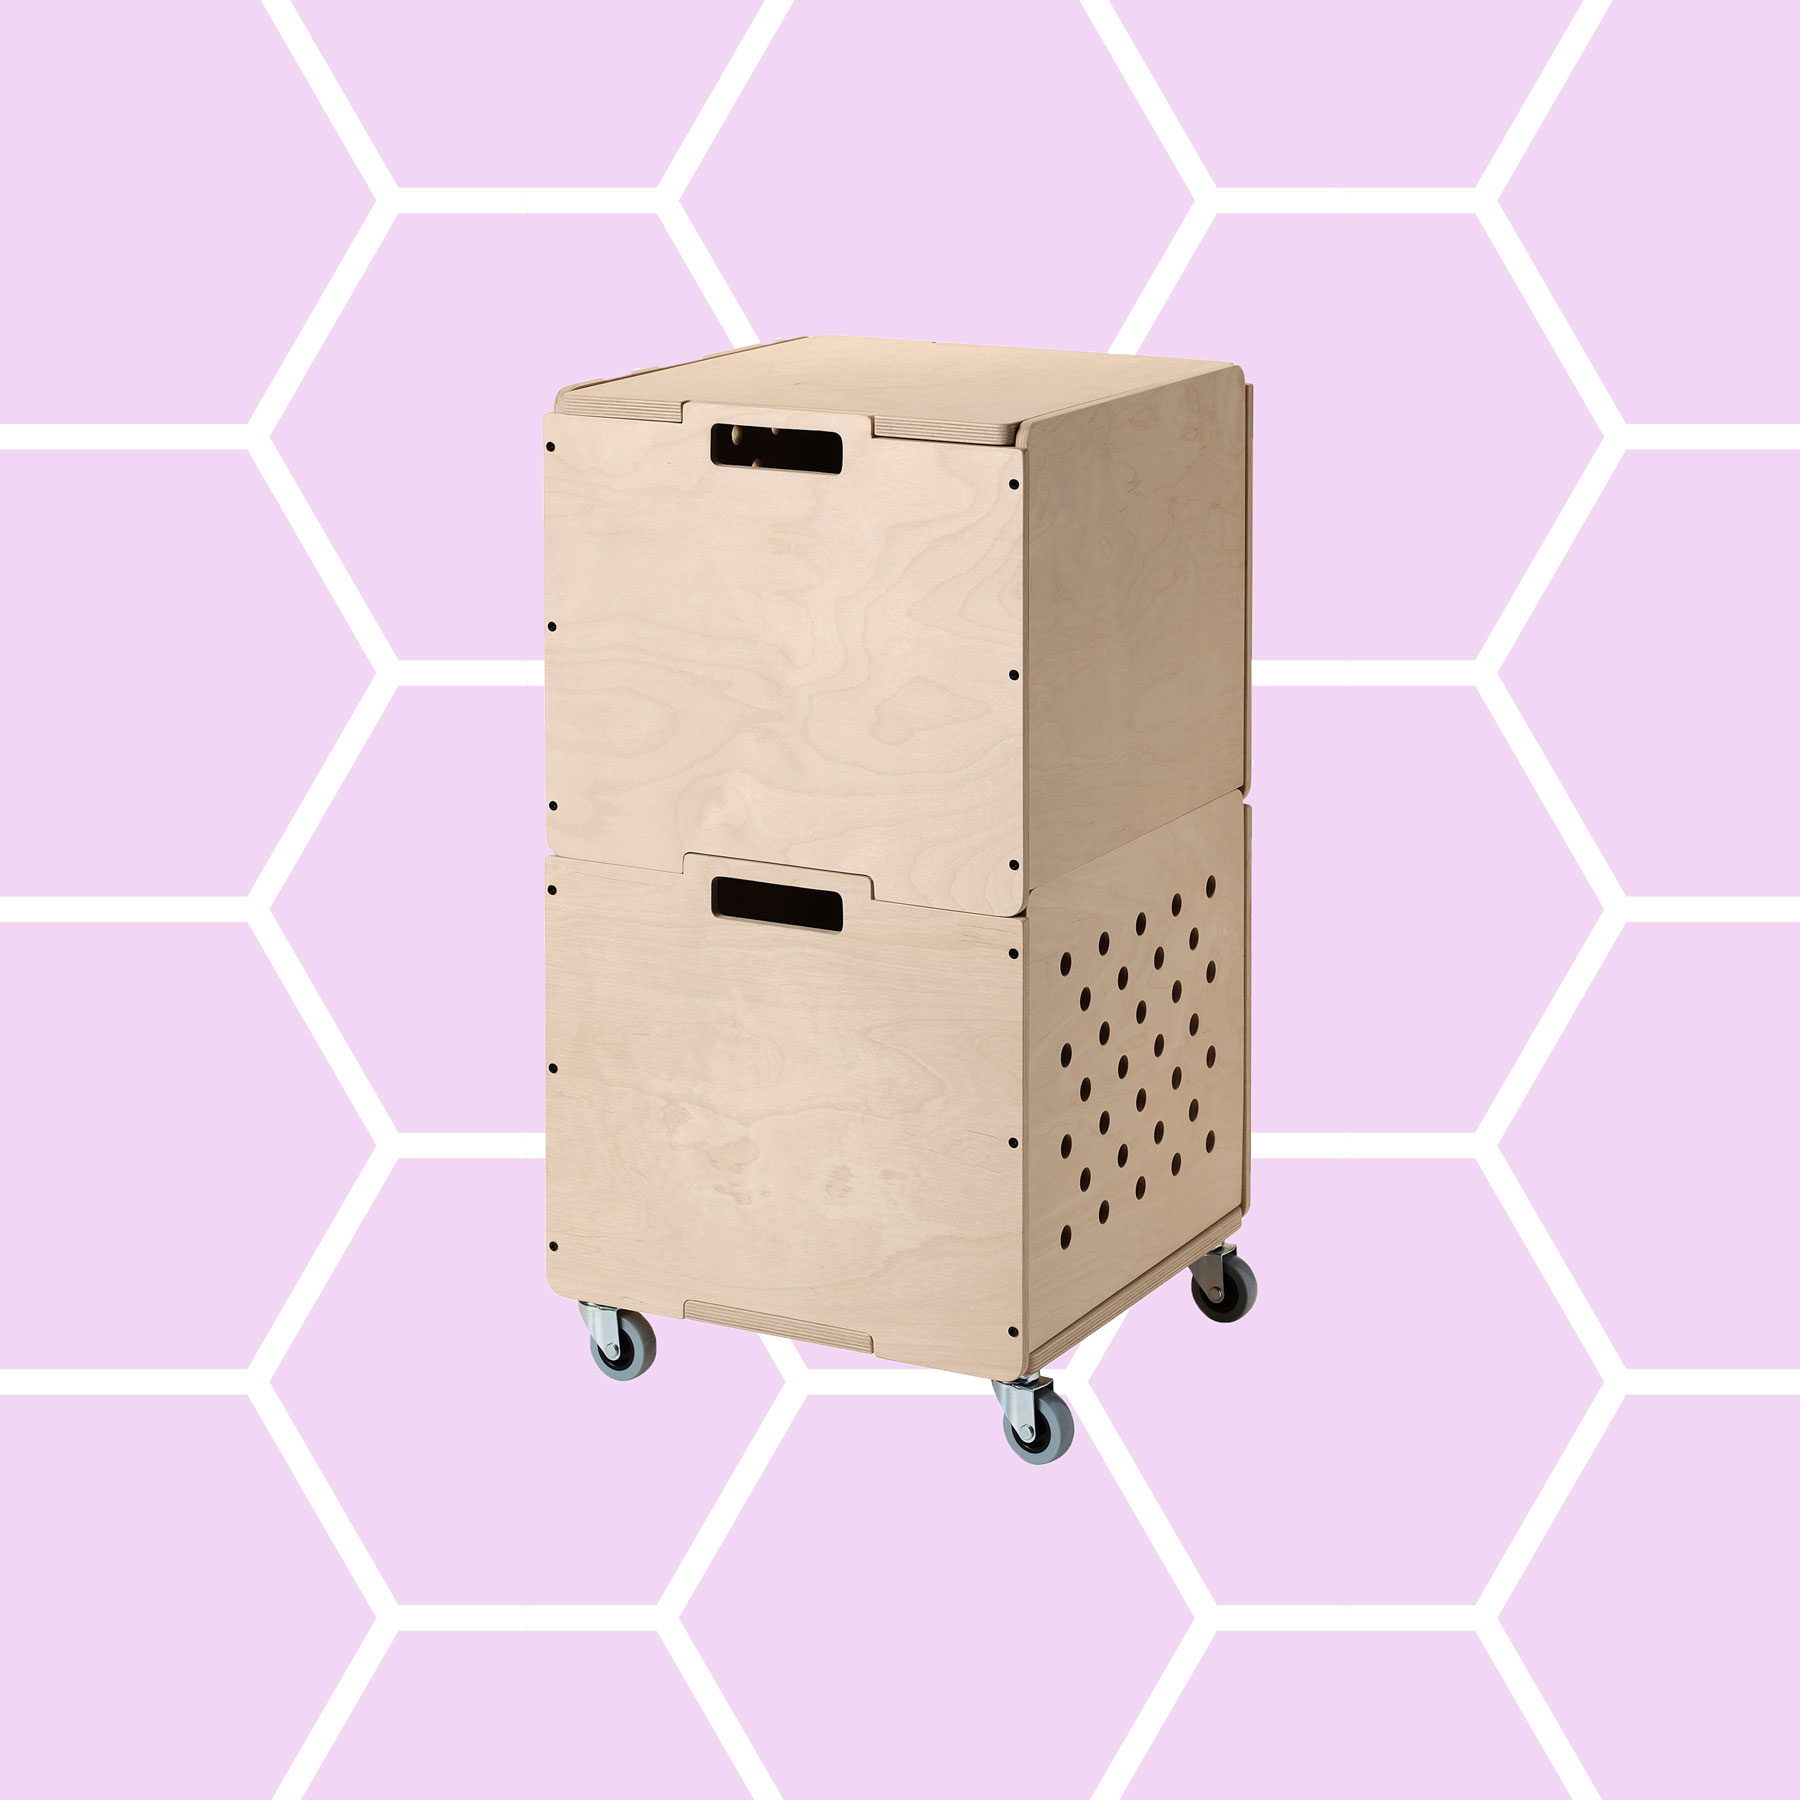 6 Clever Items 08/09/19 IKEA OMBYTE storage combination on casters tout